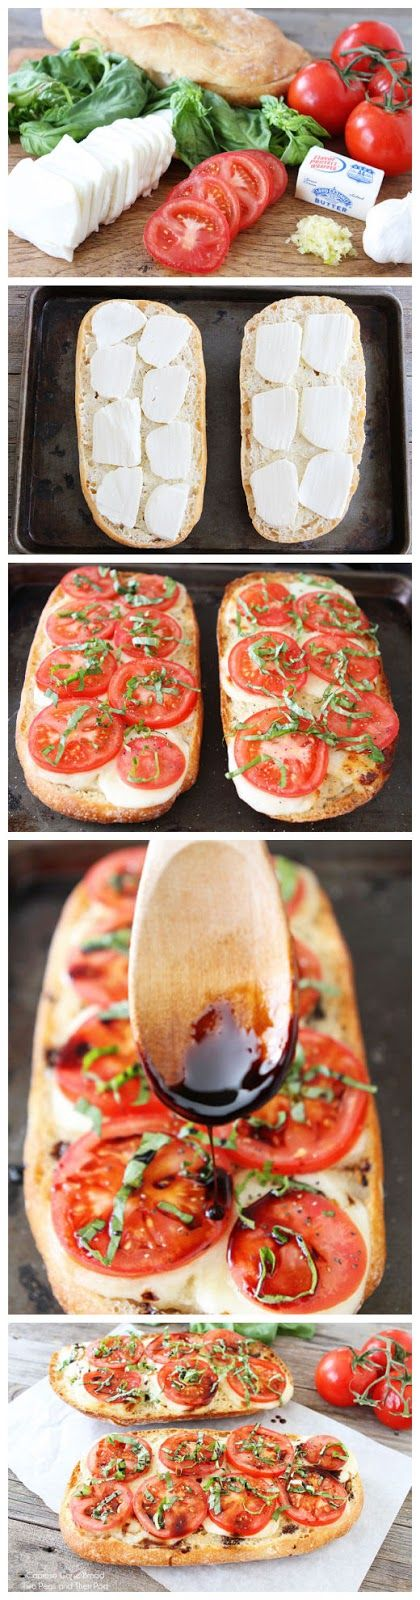 Caprese Garlic Bread Recipe ~ Making a one dish from two delicious ones combining the Italian Caprese salad and flavoursome garlic bread is one of the best ideas ever!